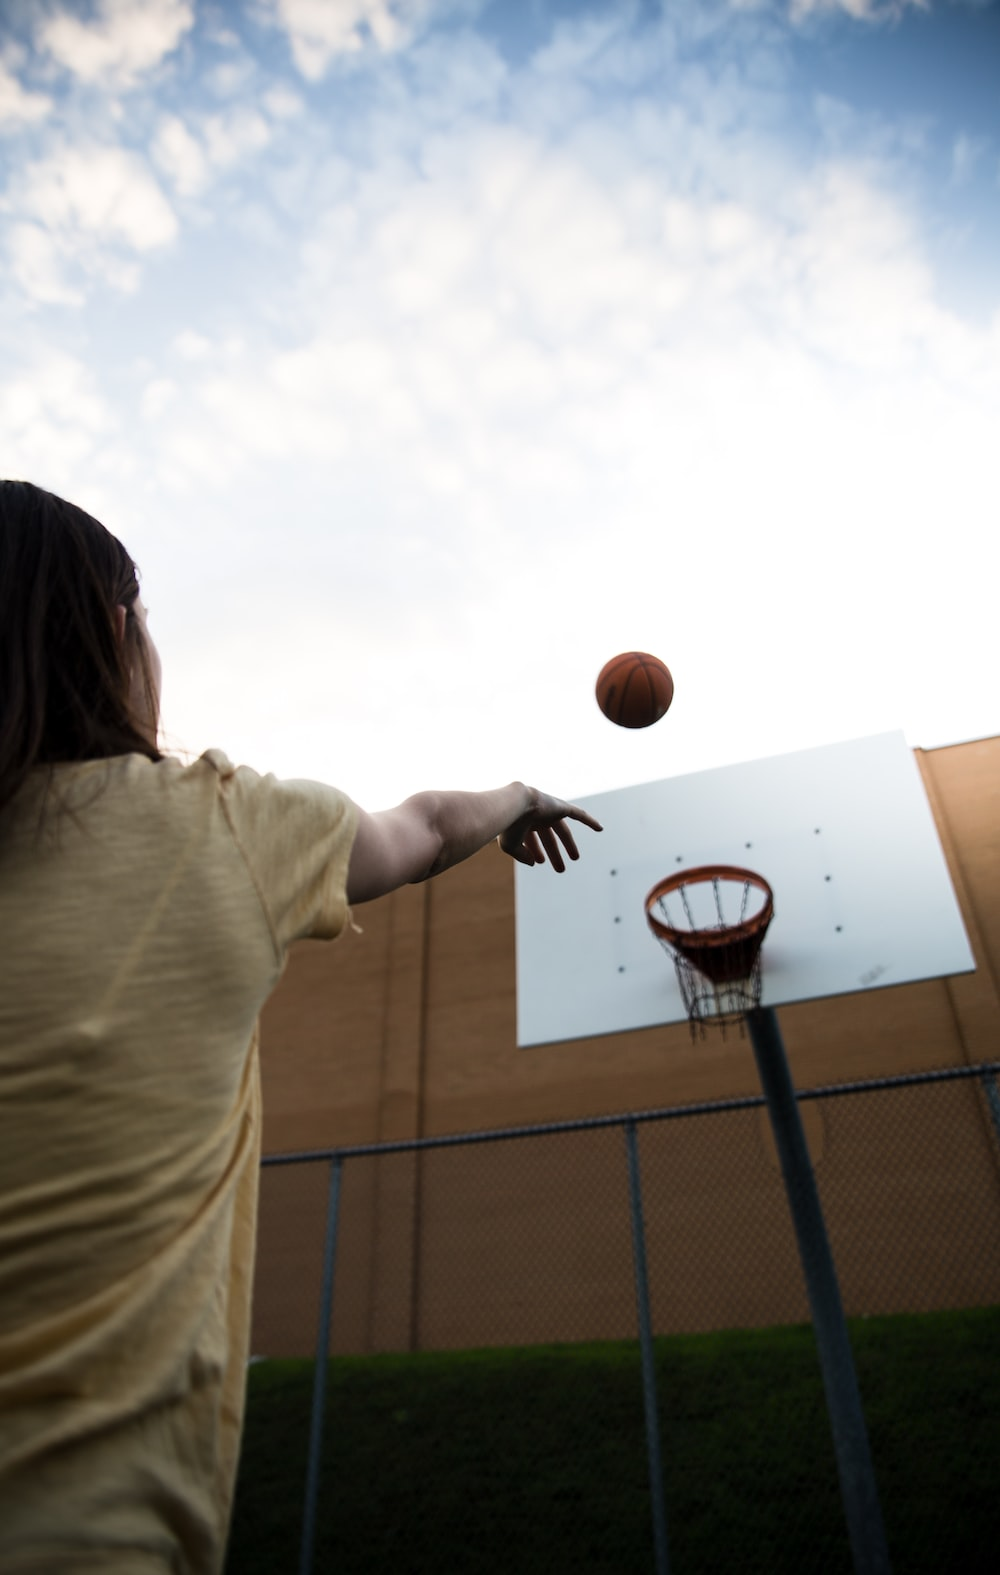 woman in white shirt holding basketball